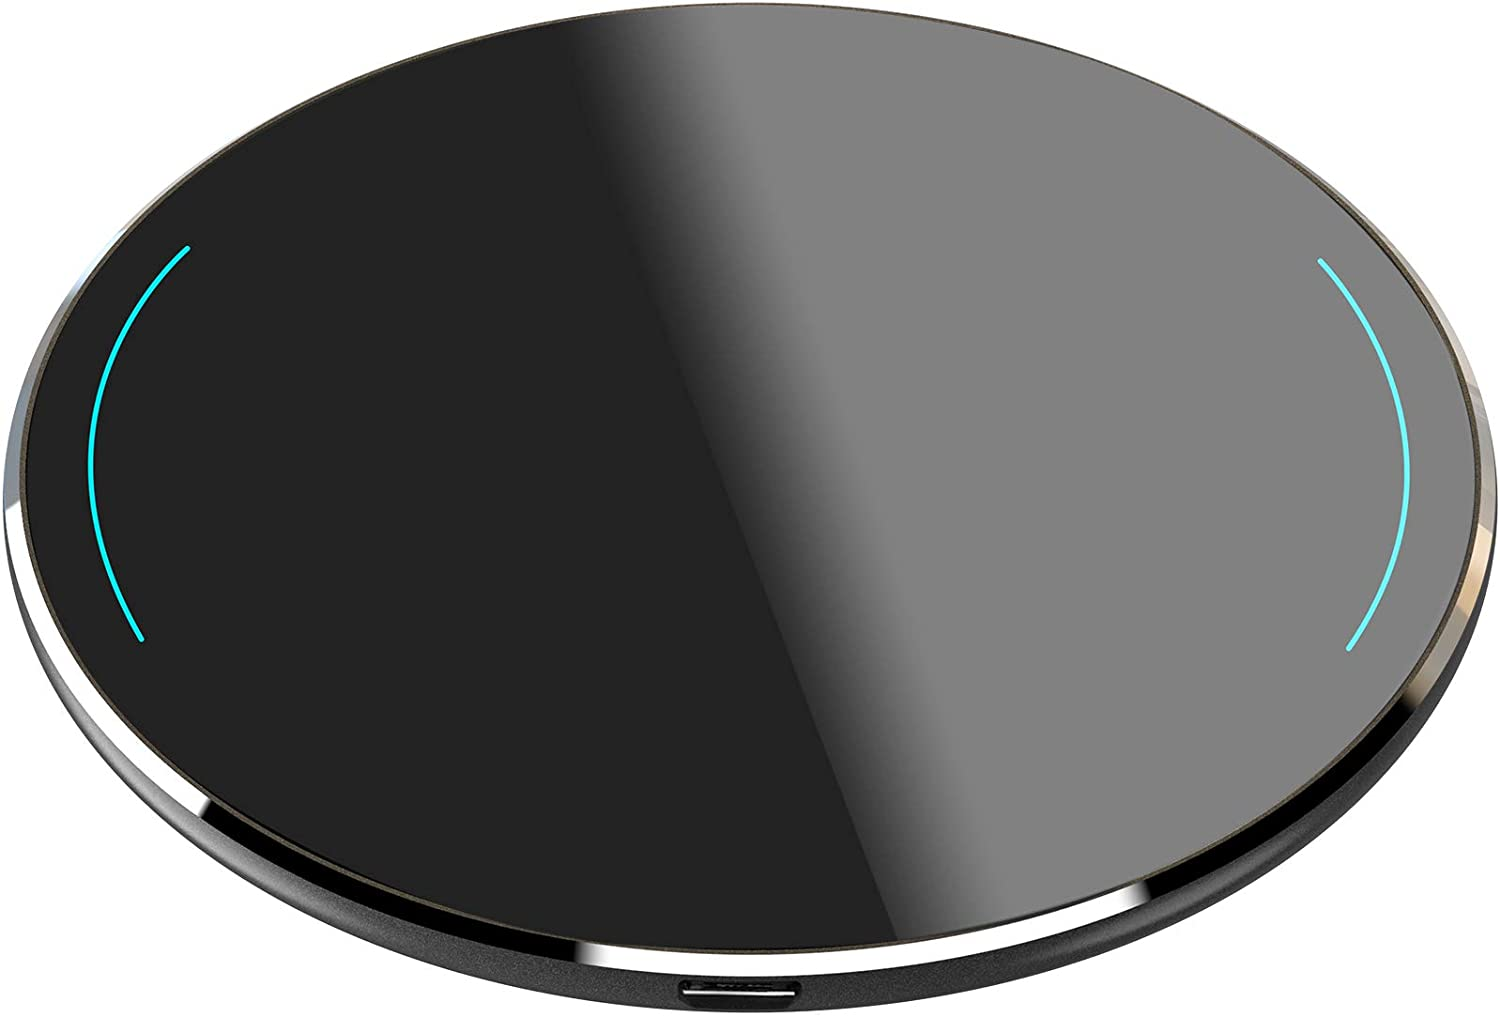 TOZO W1 Wireless Charger 9.99 Coupon